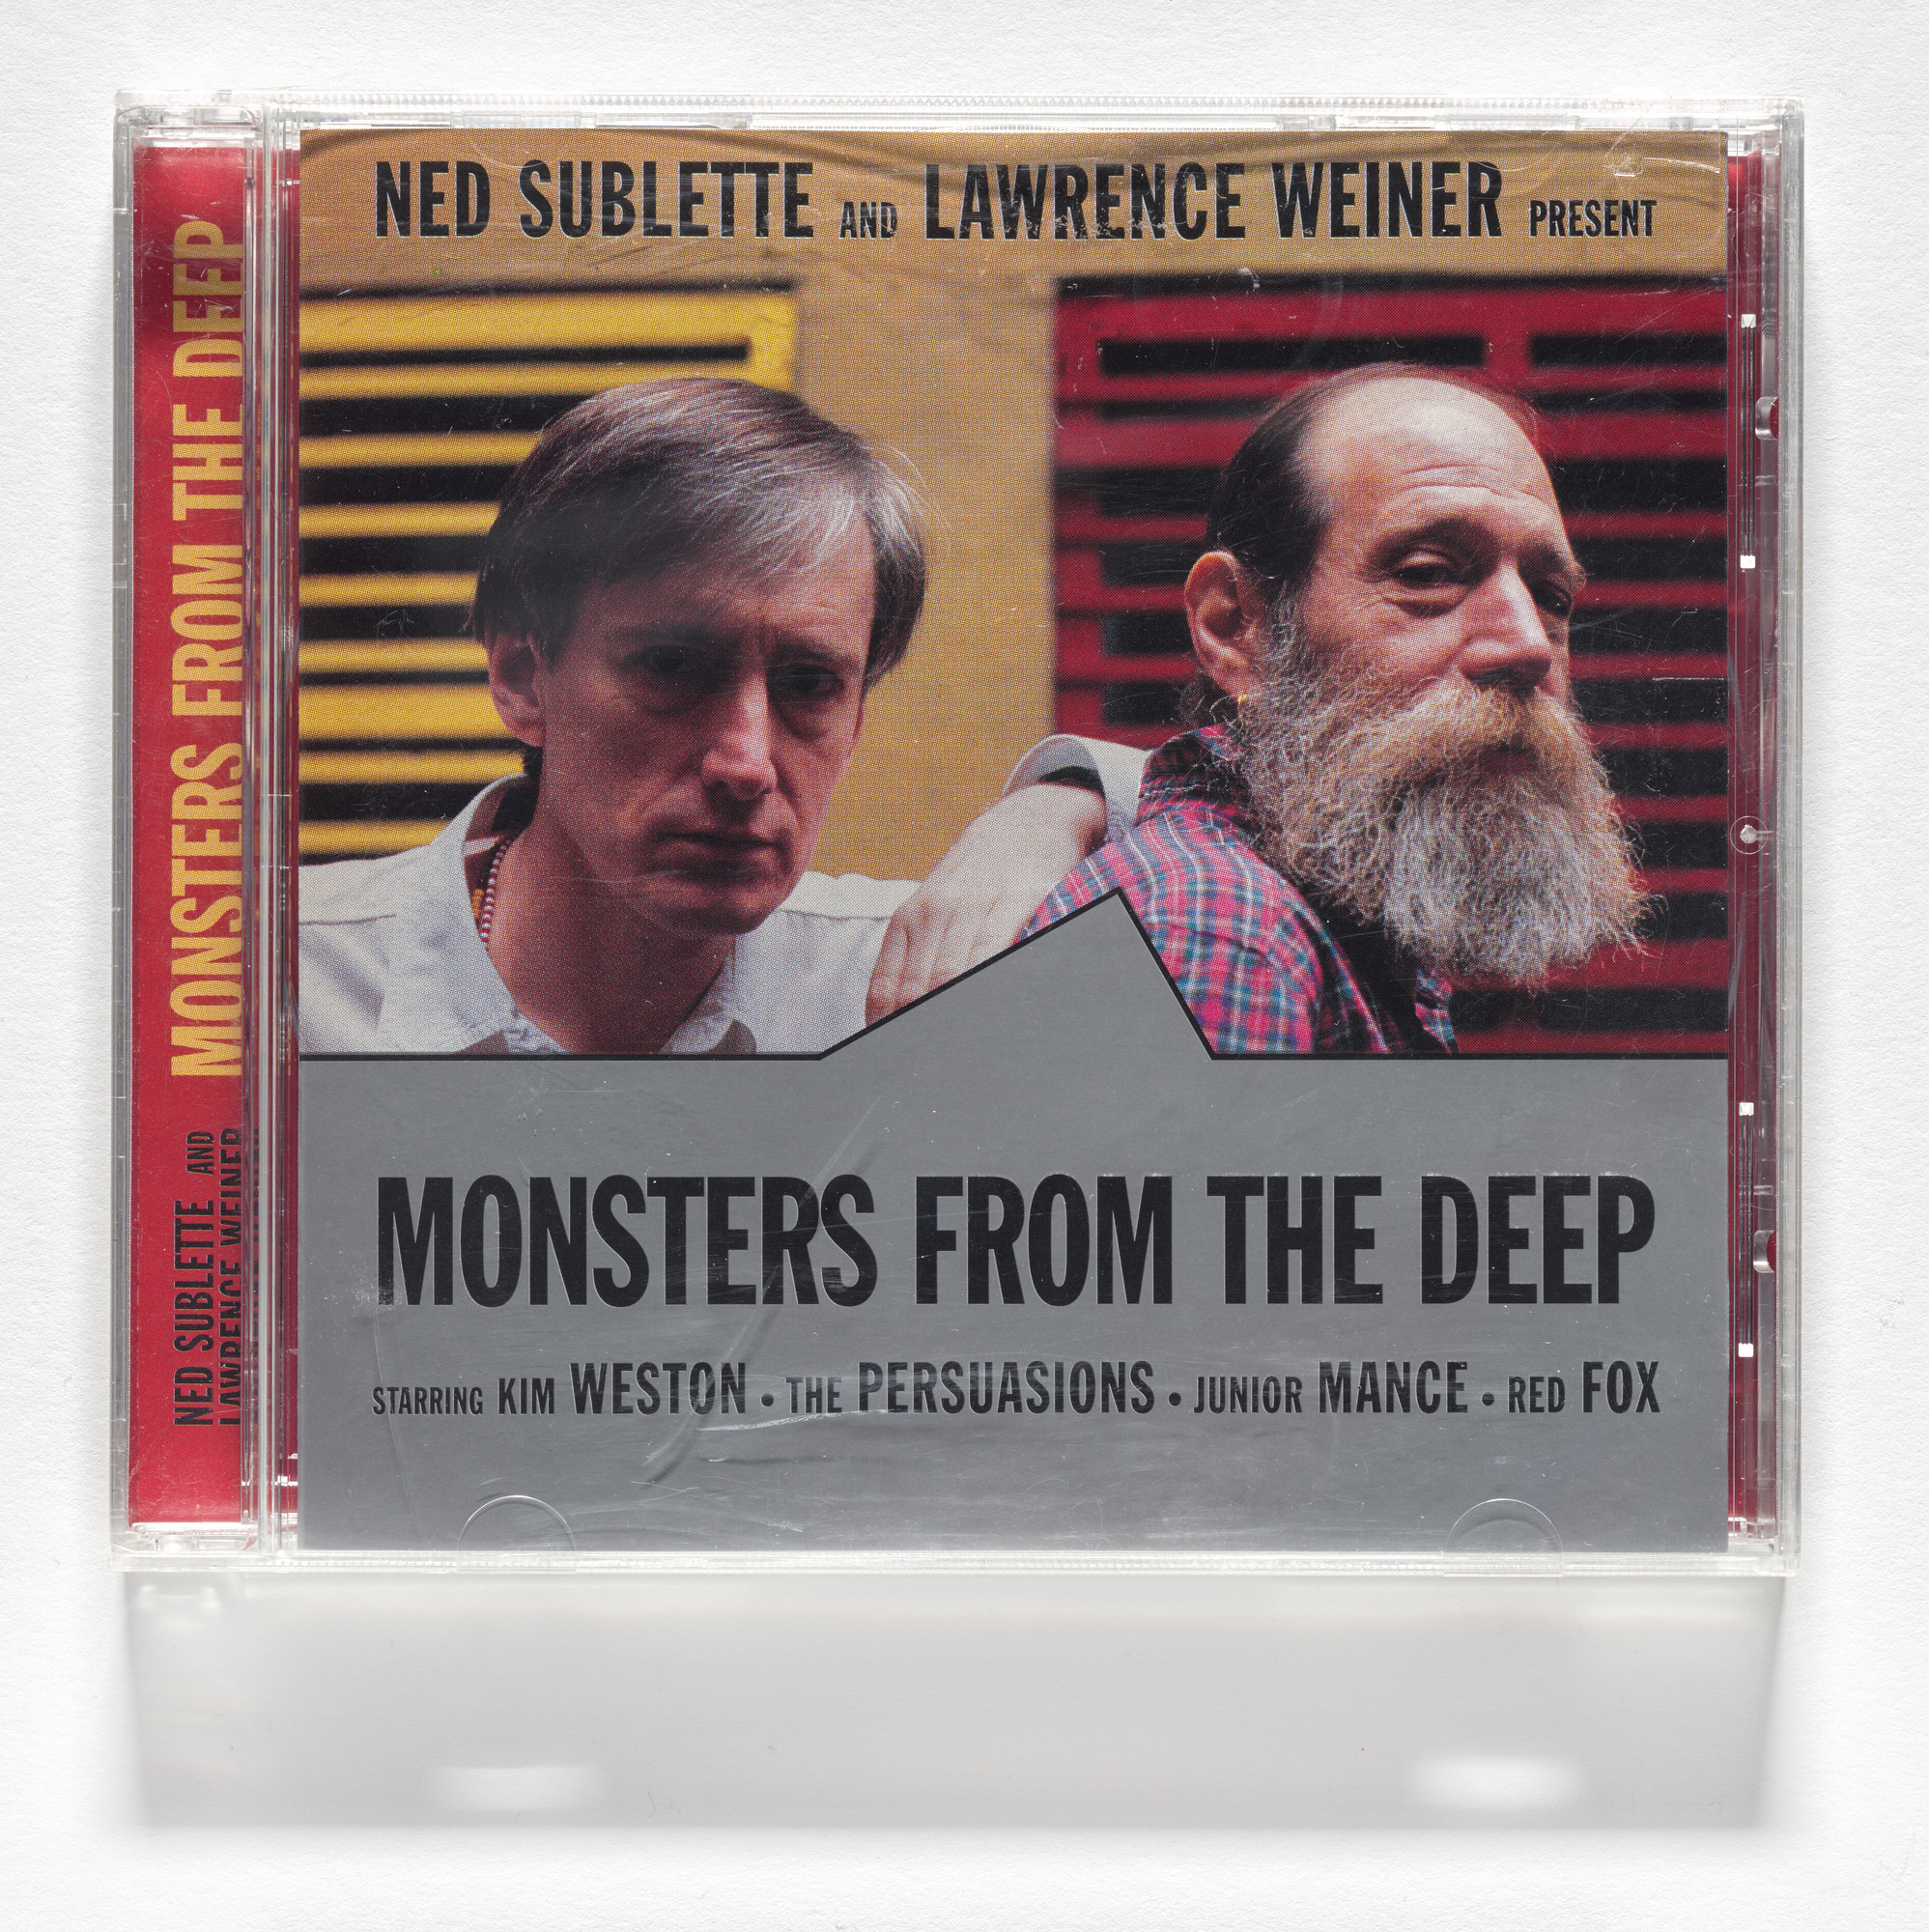 Lawrence Weiner, Ned Sublette. Monsters from the Deep. 1997